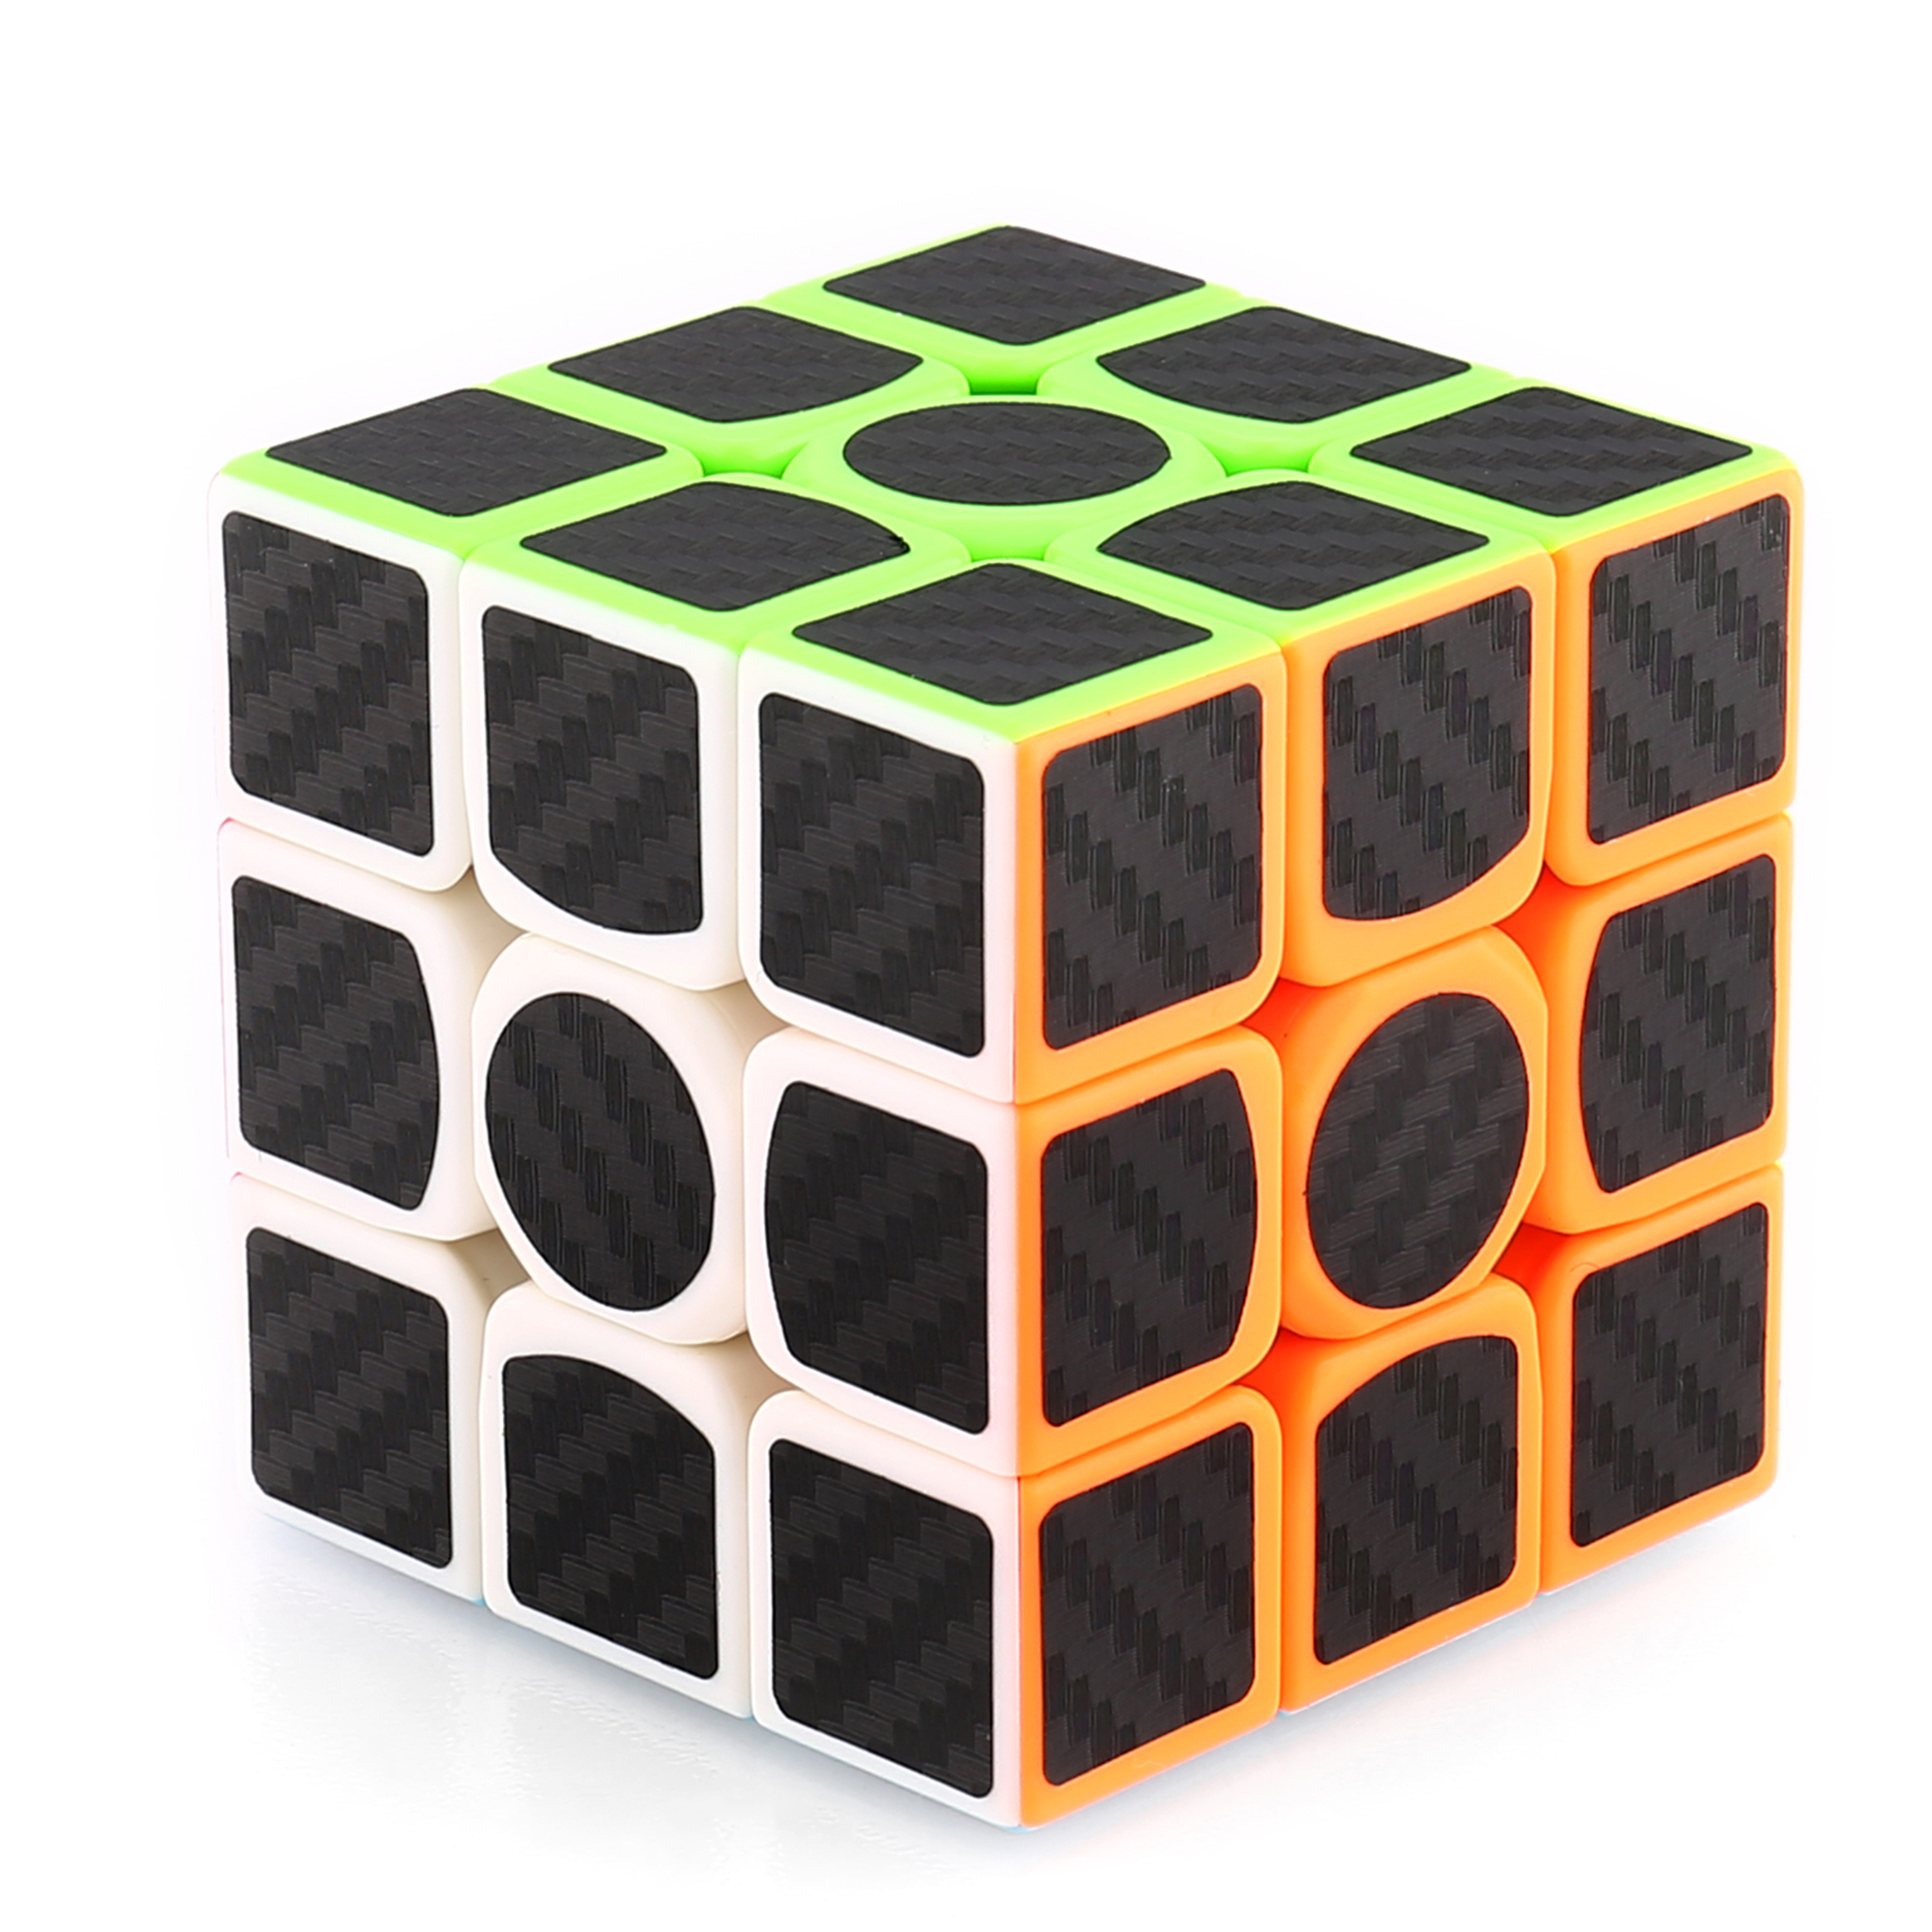 Moretek Rubik's Cube Professional Competition Fast Speed Spin Puzzle Toy